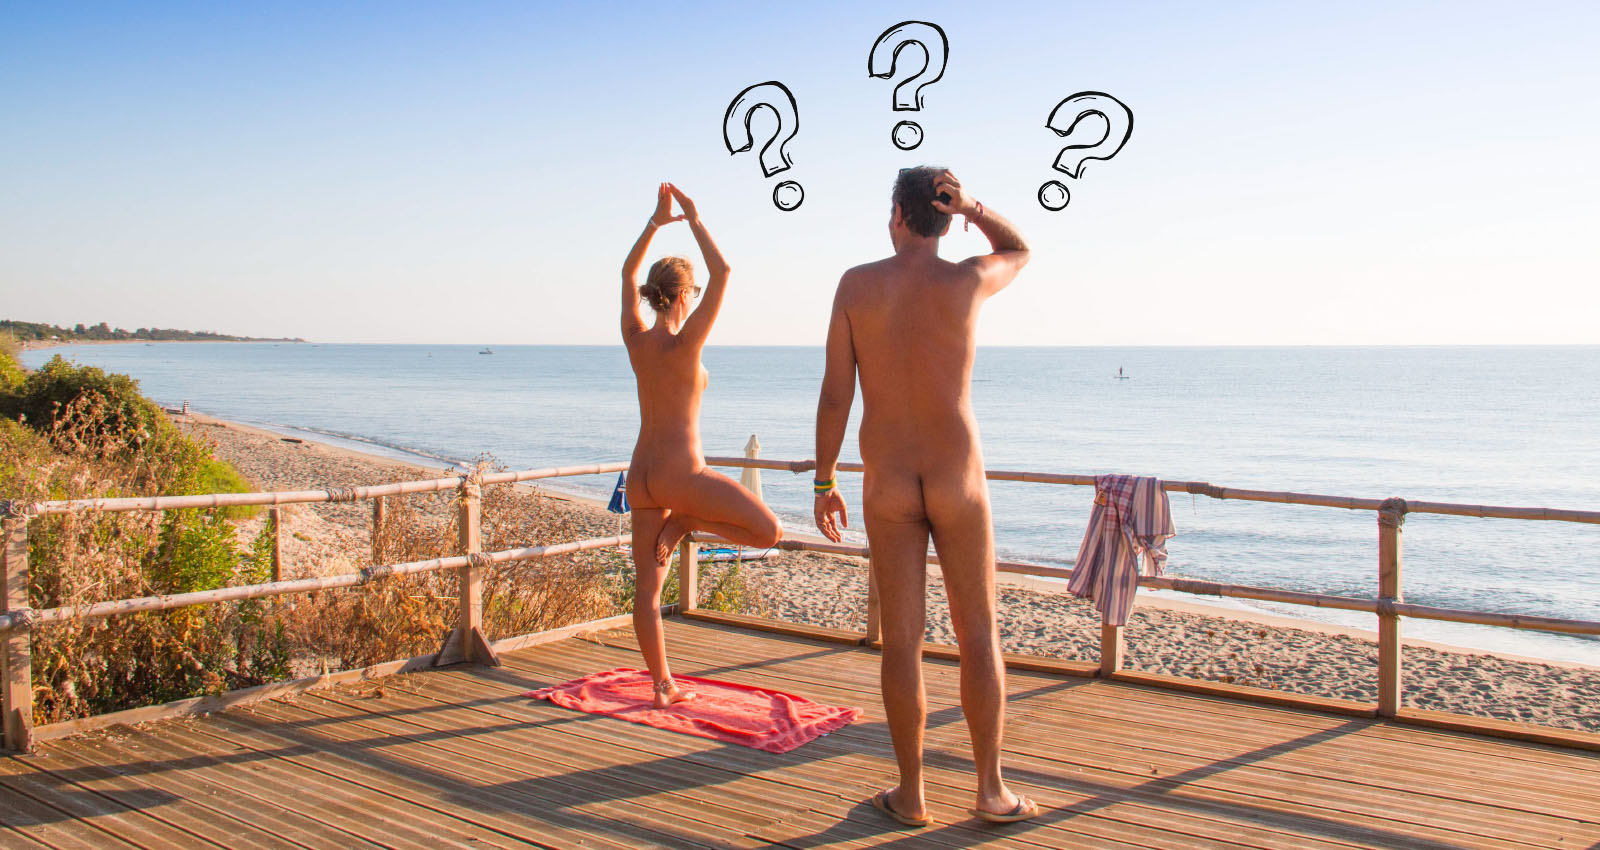 Musings about the Why in Social Nudity